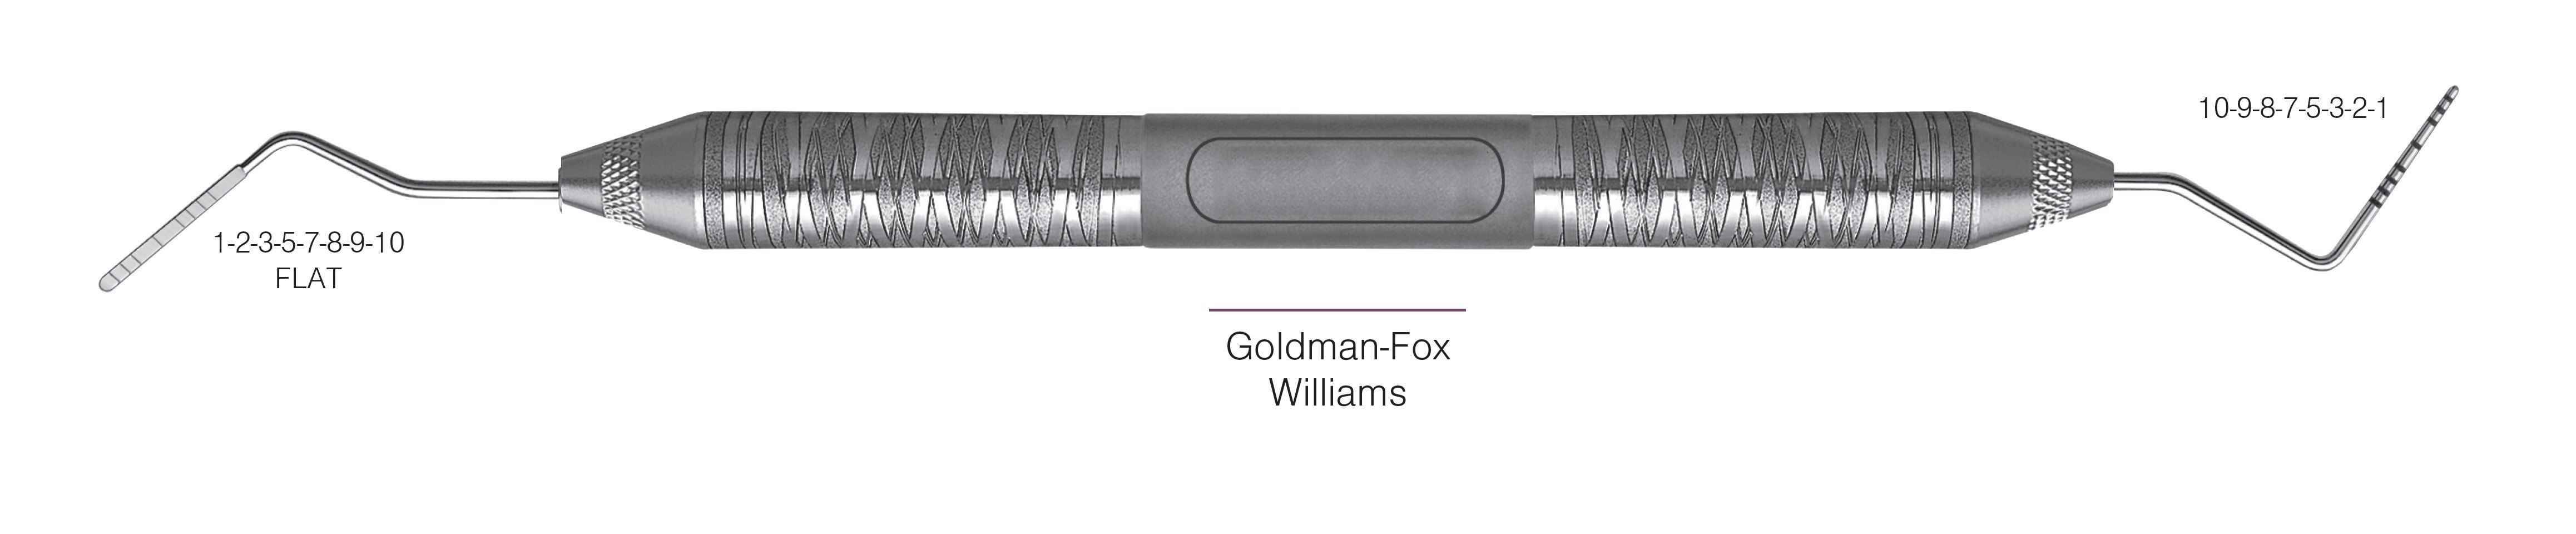 HF-PGF-W6-6, PROBES DOUBLE-ENDED Goldman-Fox/Williams, Black markings, 1-2-3-5-7-8-9-10 mm FLAT & 10-9-8-7-5-3-2-1 mm, Handle Satin Steel, Aluminum Titanium Nitride (AlTiN) Coating, Double Ended